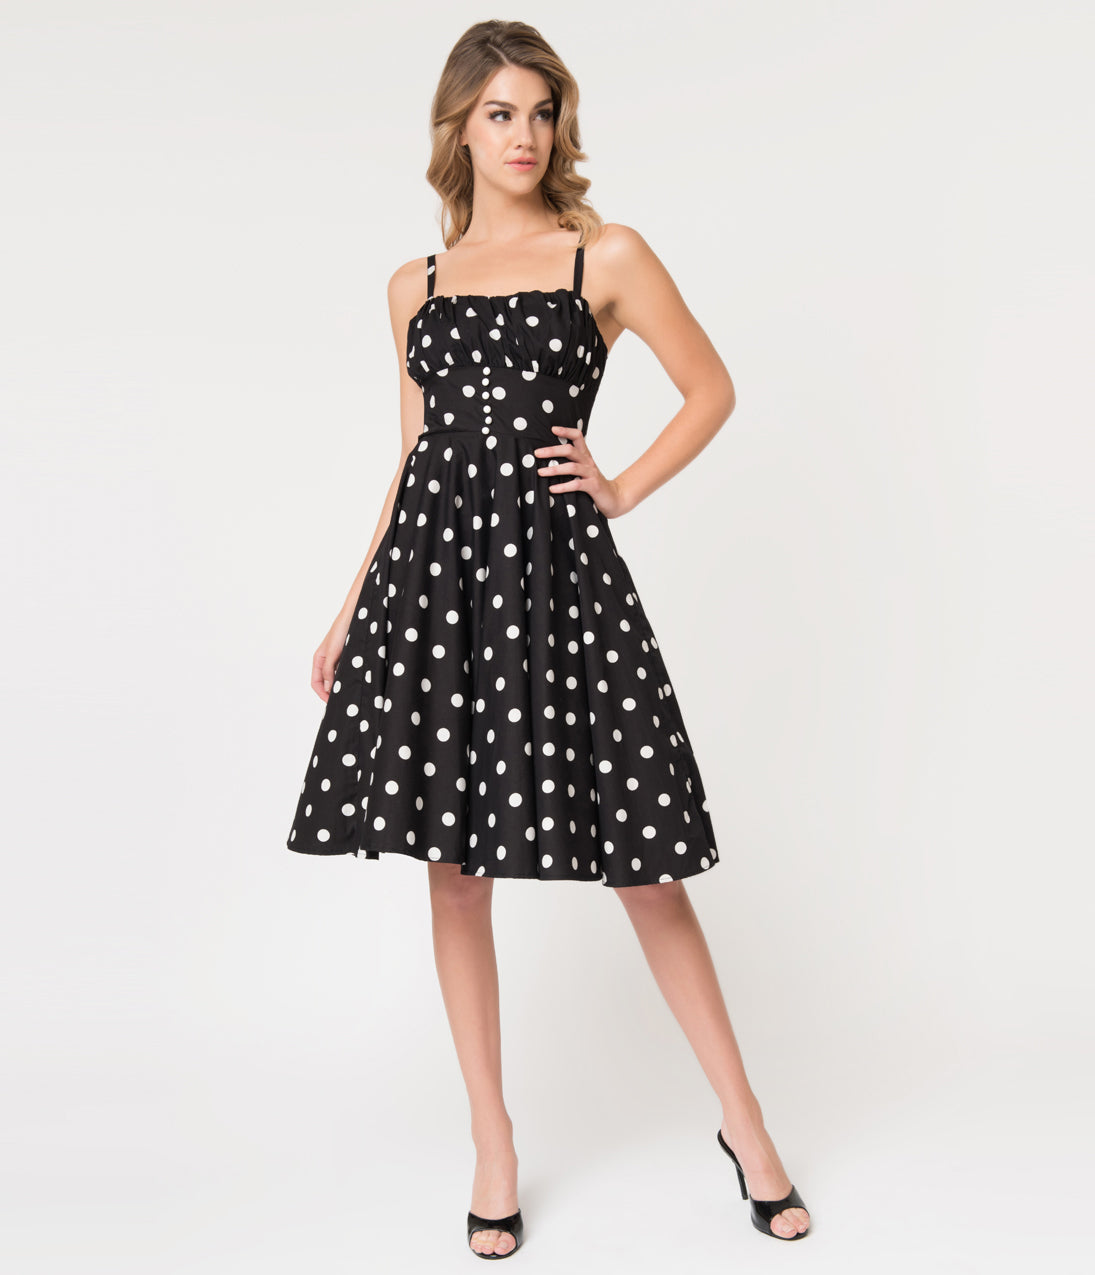 Vintage Polka Dot Dresses – 50s Spotty and Ditsy Prints Retro Style Black  White Dot Cotton Bonnie Swing Dress $68.00 AT vintagedancer.com